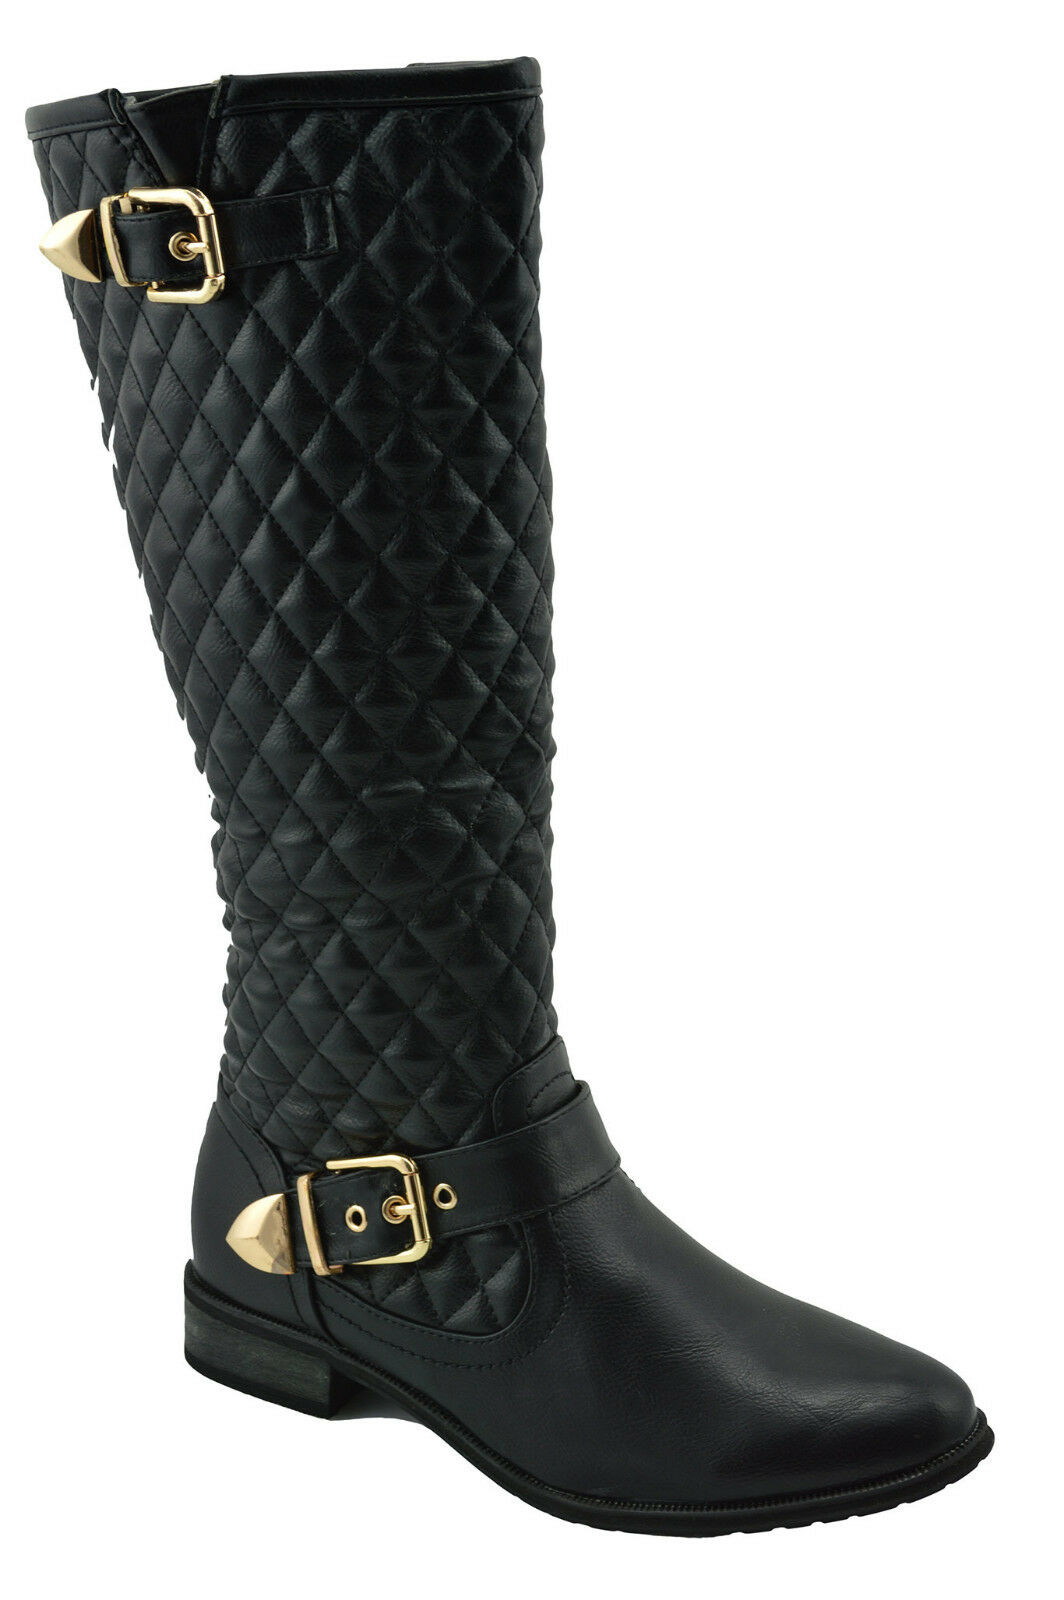 150 Black Faux Leather Fashion Knee High BOOTS Women Shoes NEW COLLECTION